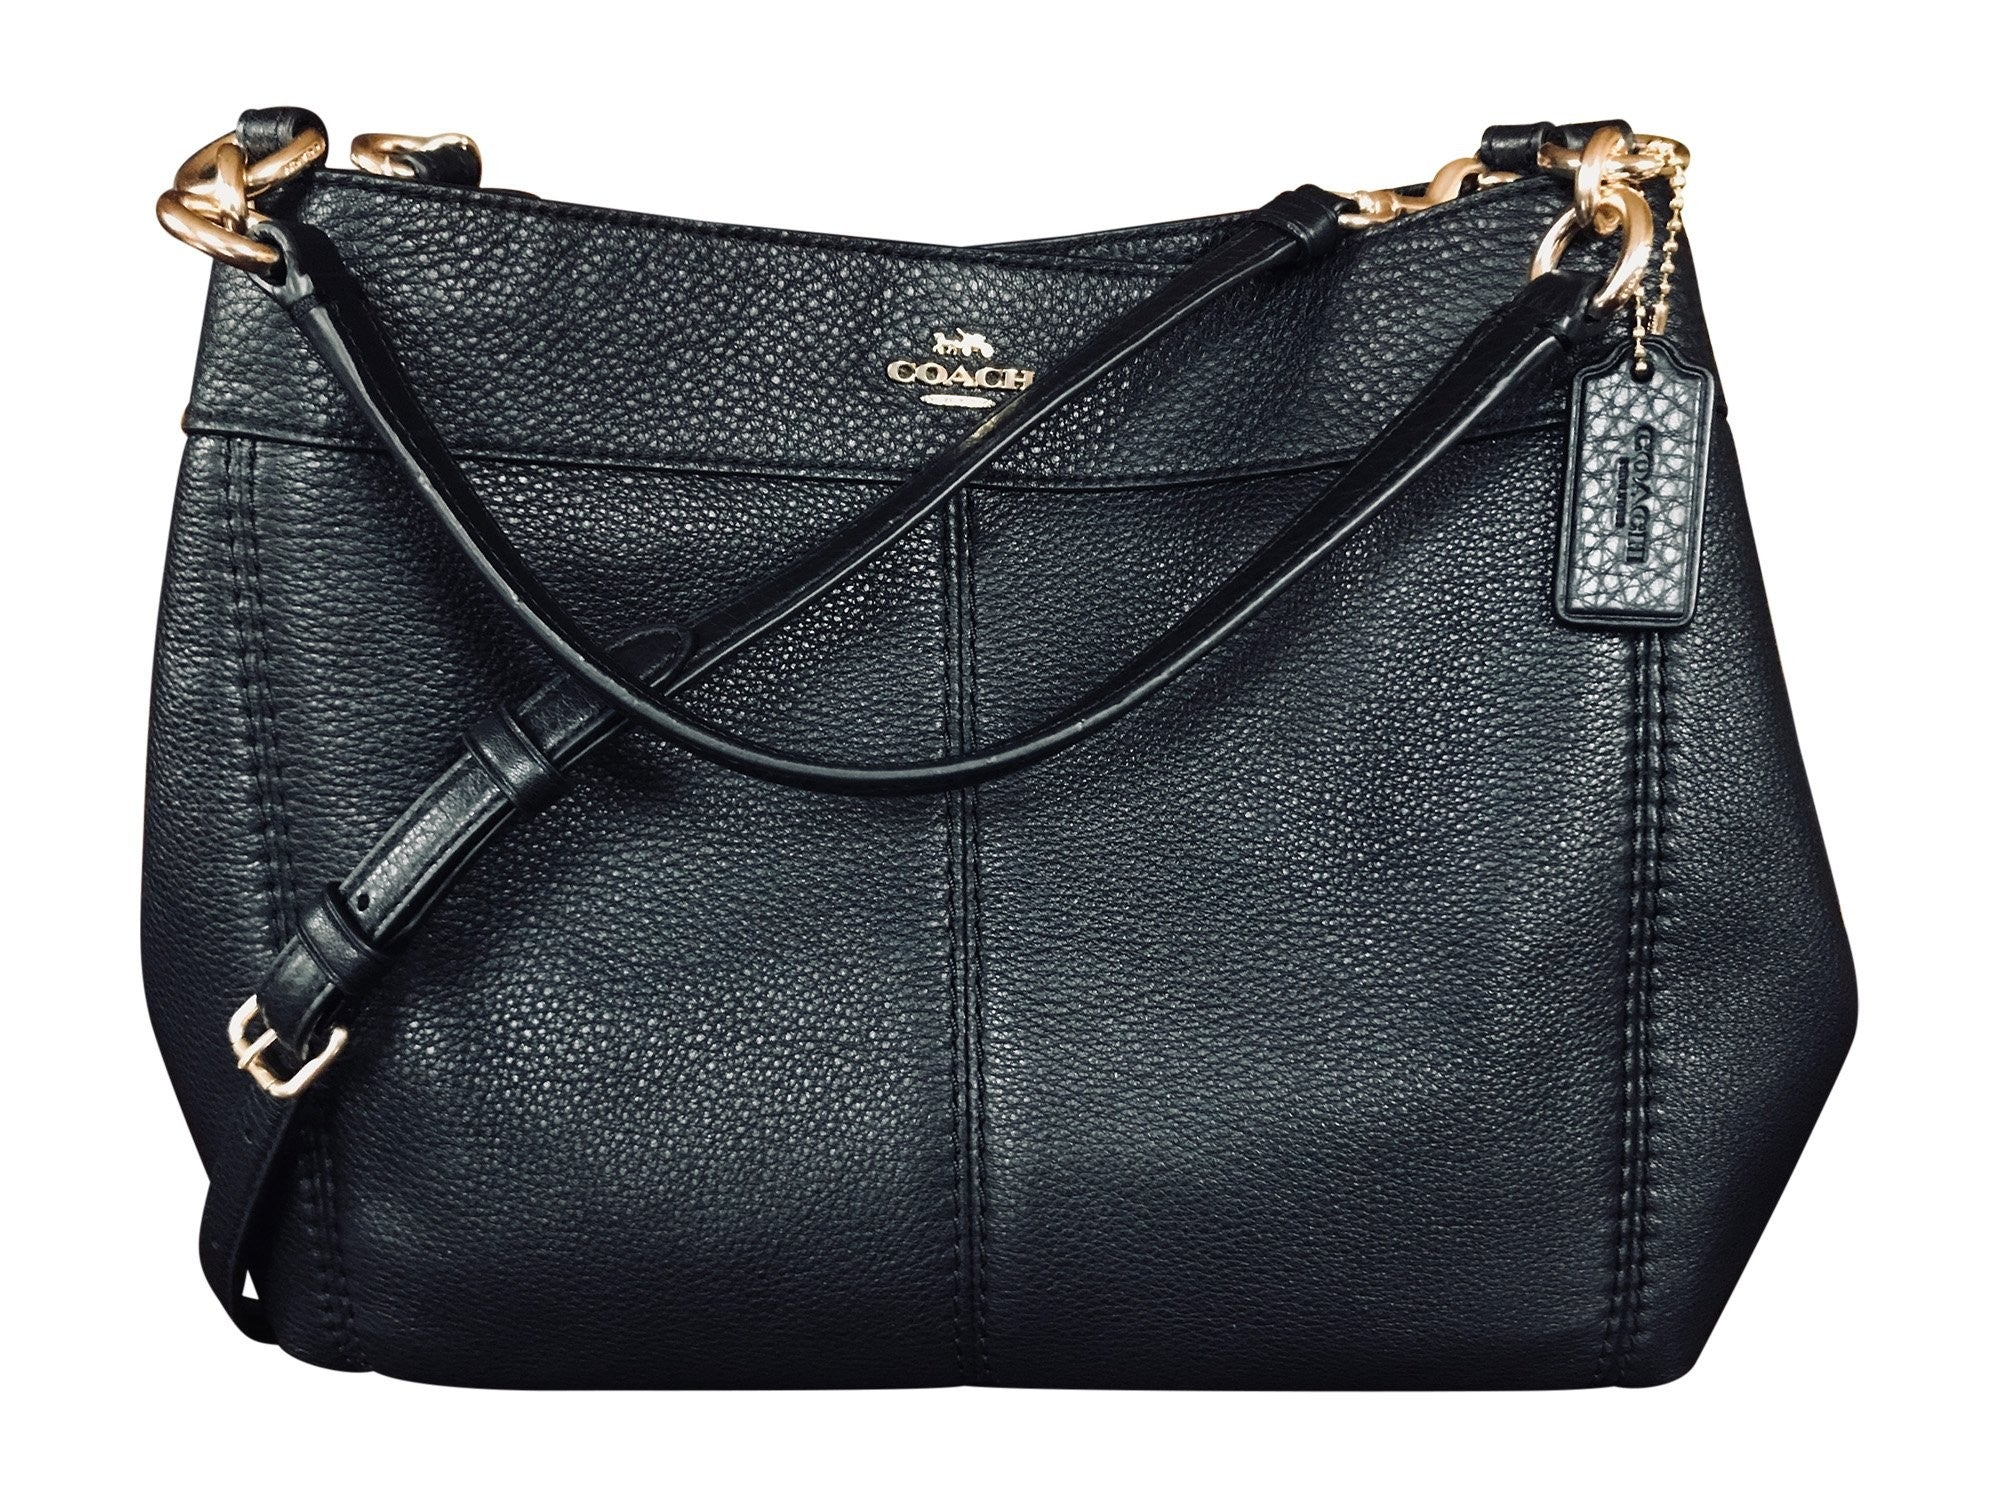 Coach Pebbled Leather Small Lexy Shoulder Bag - Watchcove a6faeacc5d227